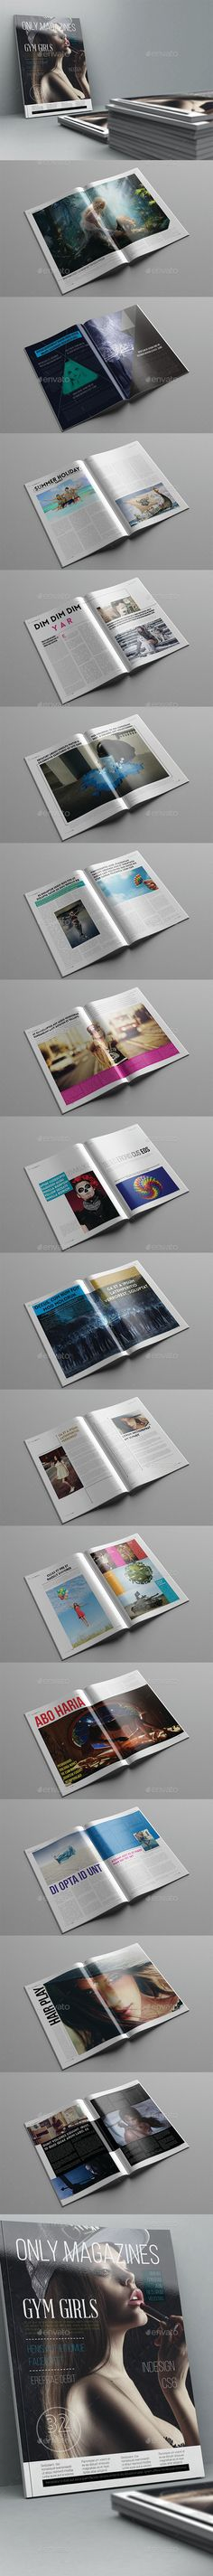 Only Magazine Template 32 Pages #design  Download: http://graphicriver.net/item/only-magazine-template-32-pages/12258729?ref=ksioks